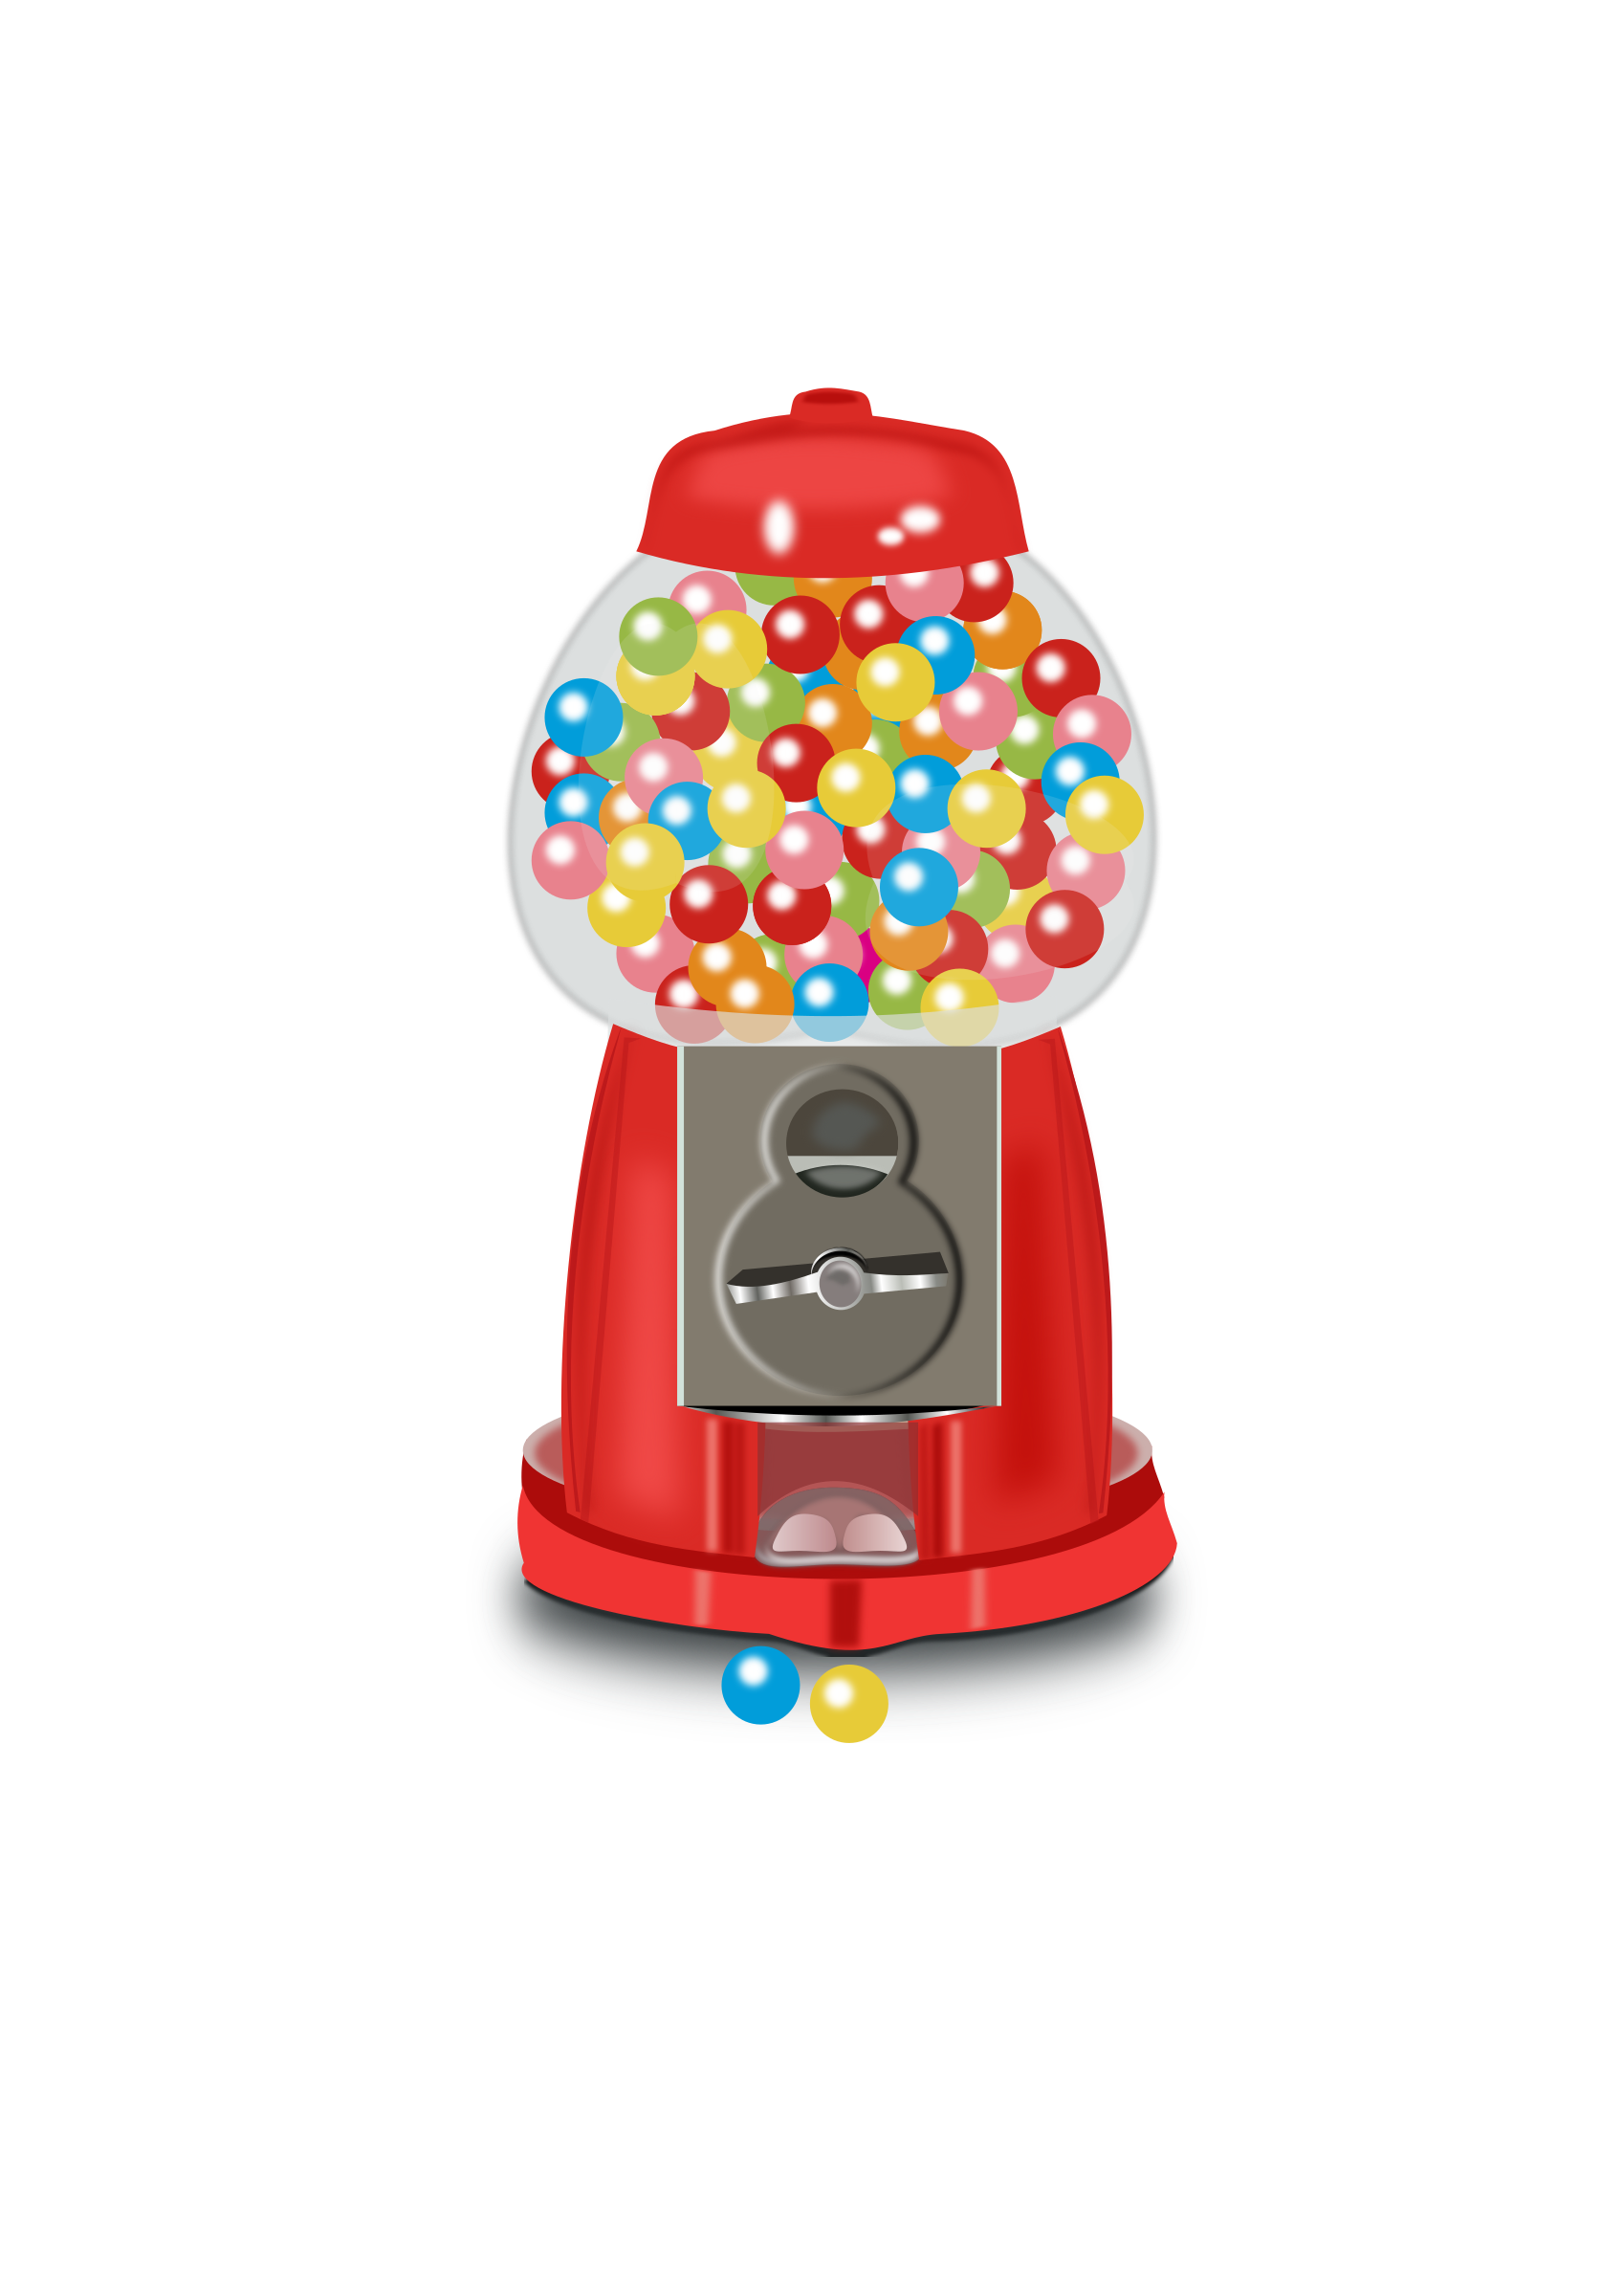 Gum clipart candy machine.  collection of transparent